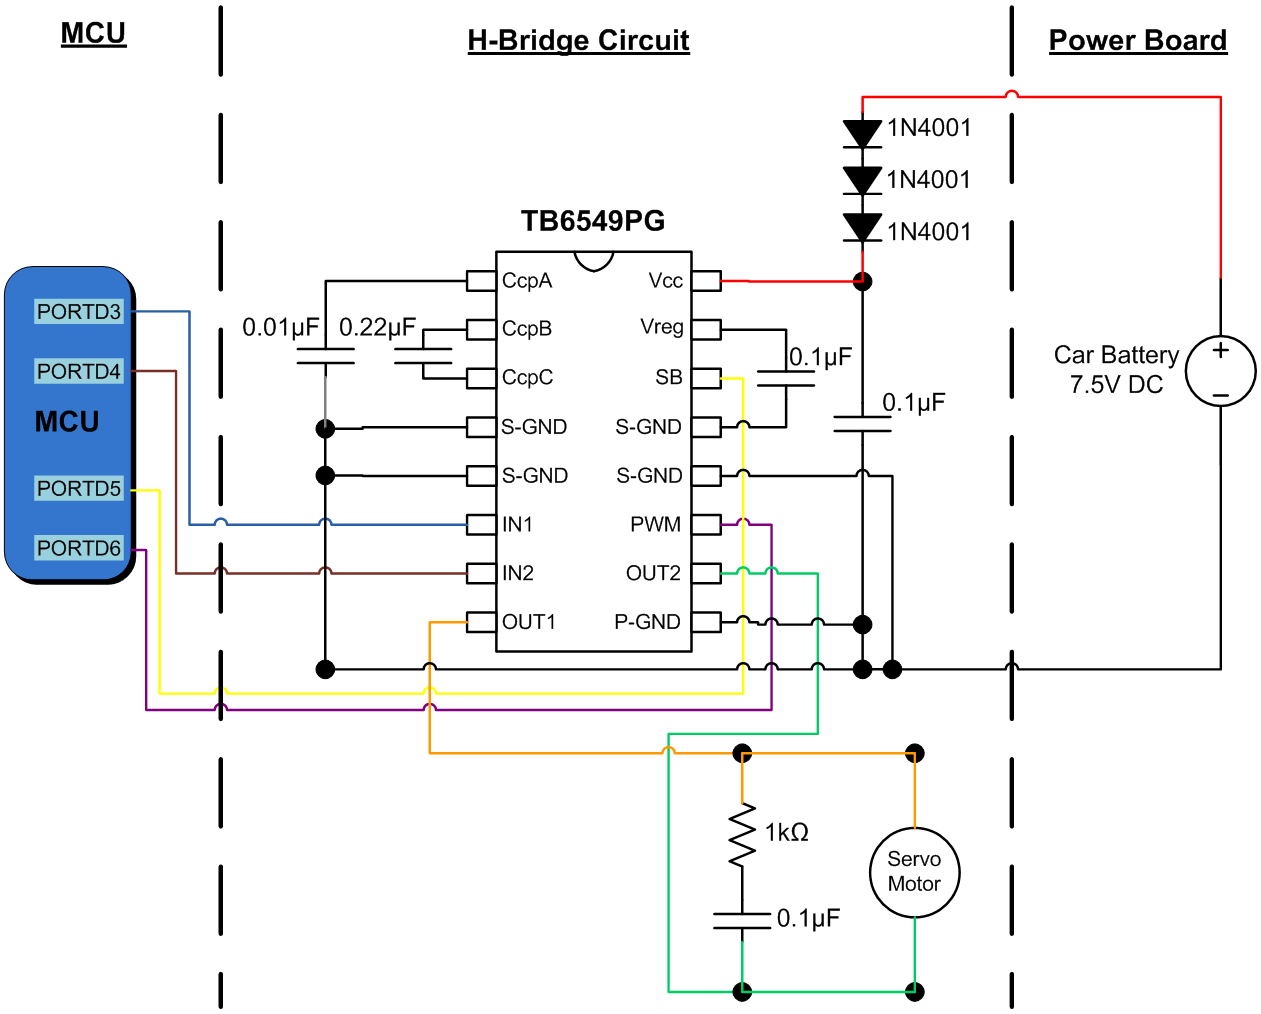 Ece 4760 The Autonomous Driving Car Wiring Diagram Further Motion Sensor Light Additionally H Bridge Circuit